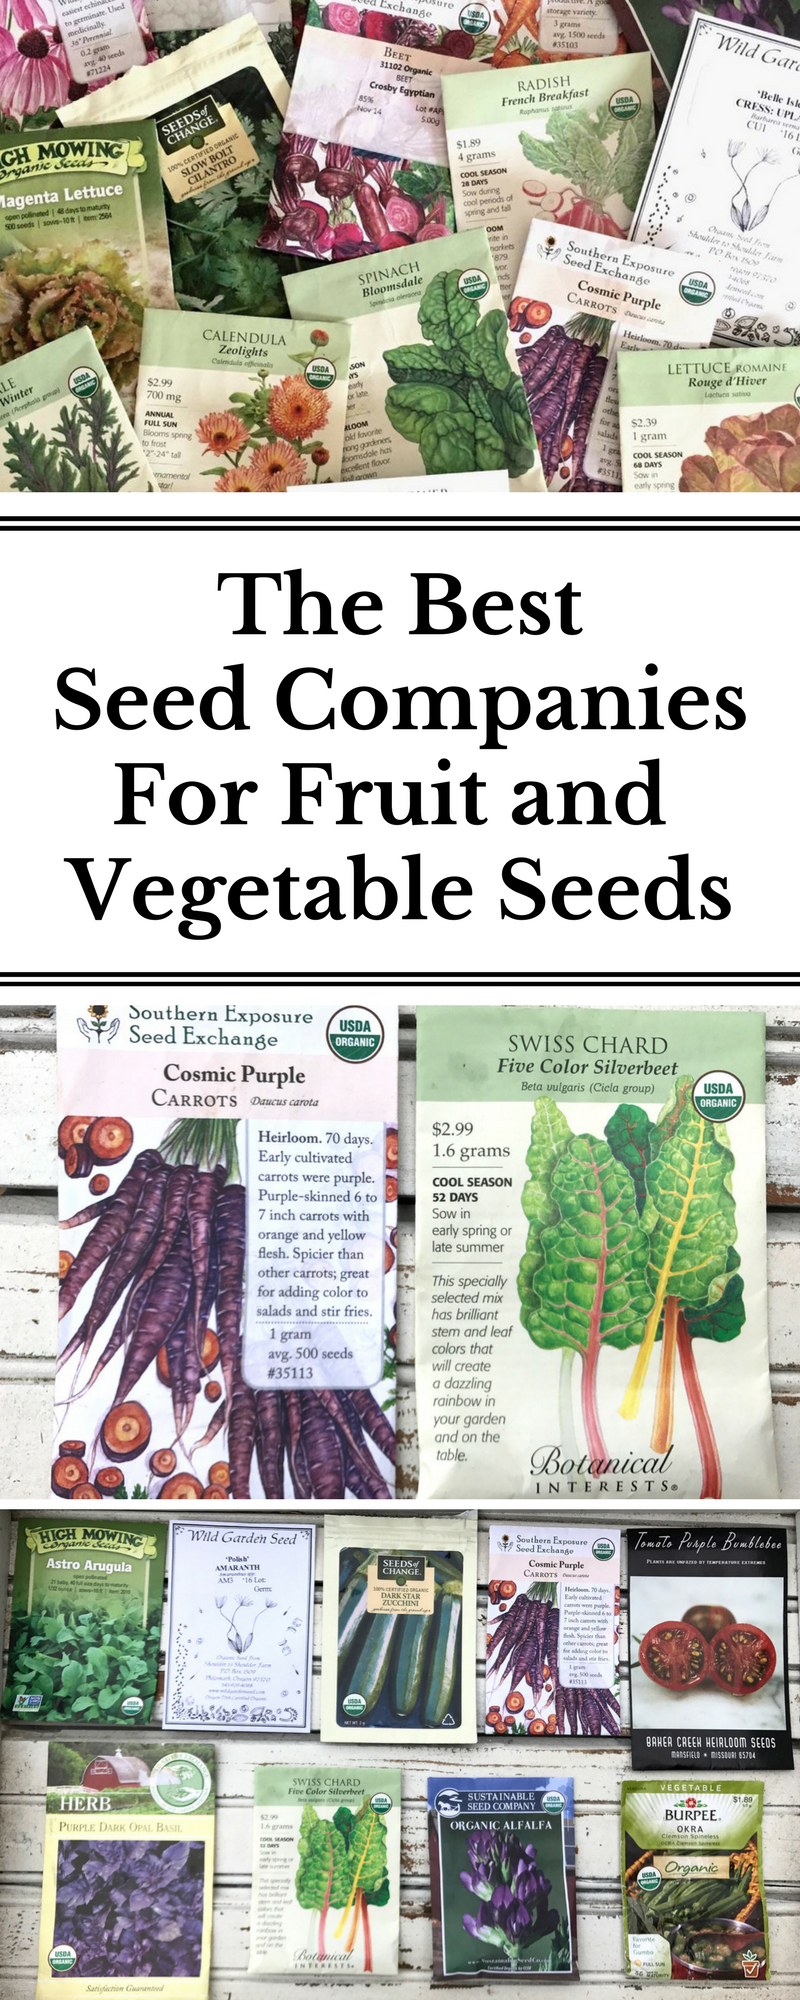 The Best Seed Companies | Nourishing Pursuits